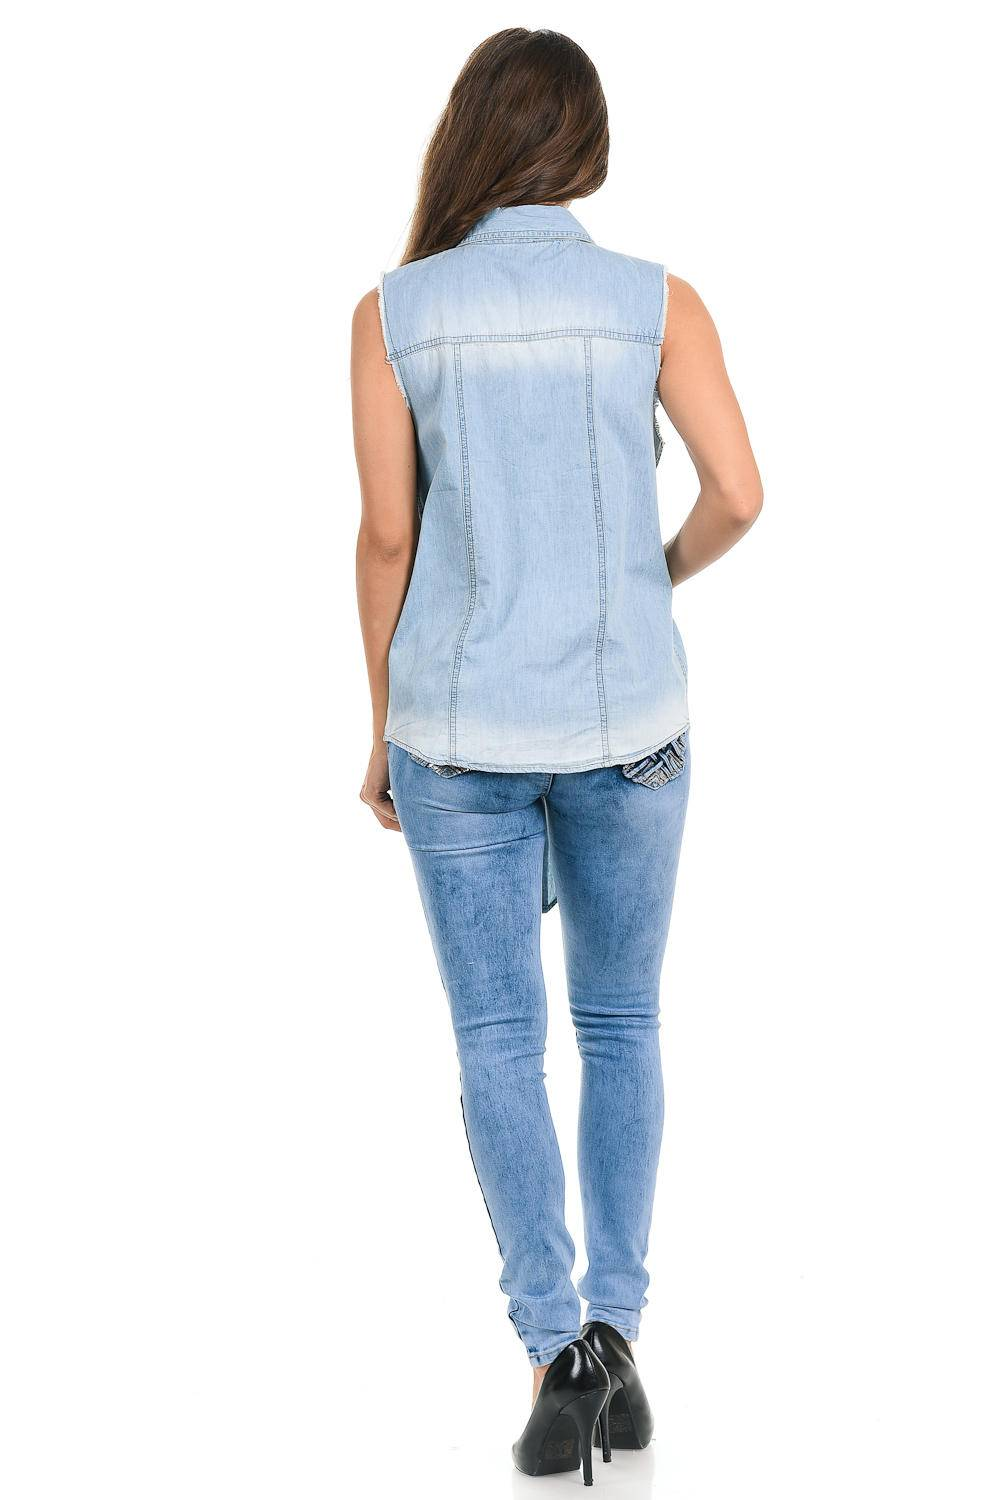 Sweet Look Women's Denim Blouse (Sizing: S-3XL) · Denim Shirt ...